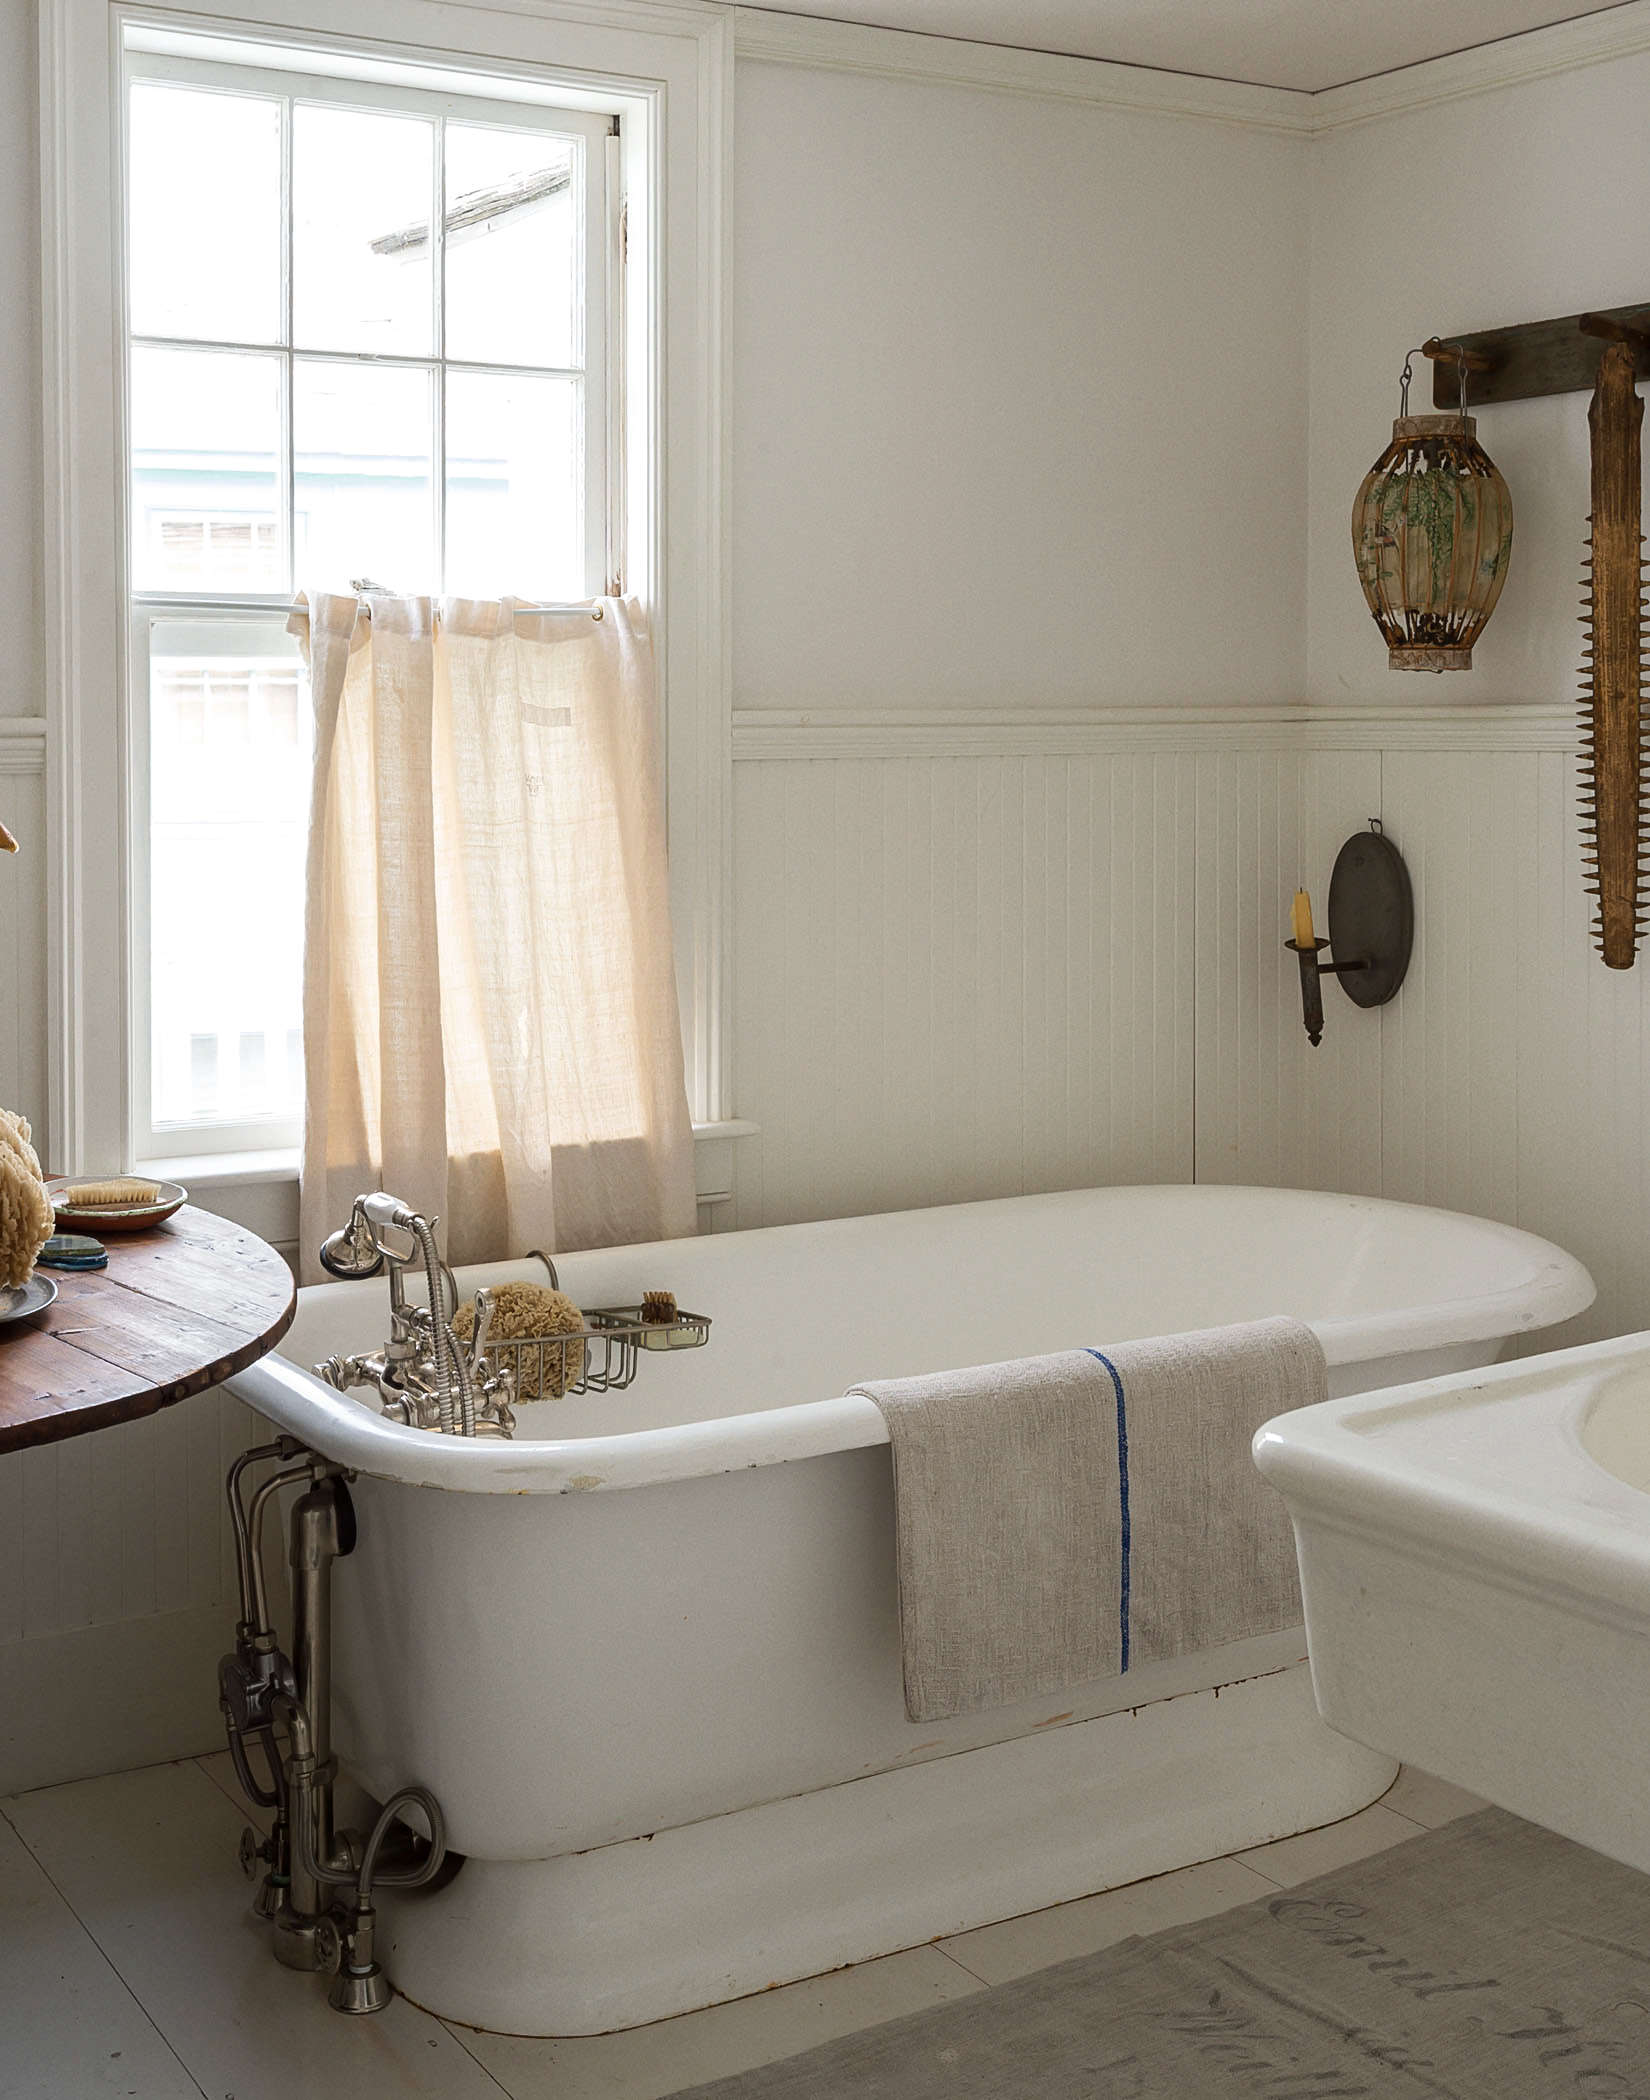 John Derian Bathroom Tub